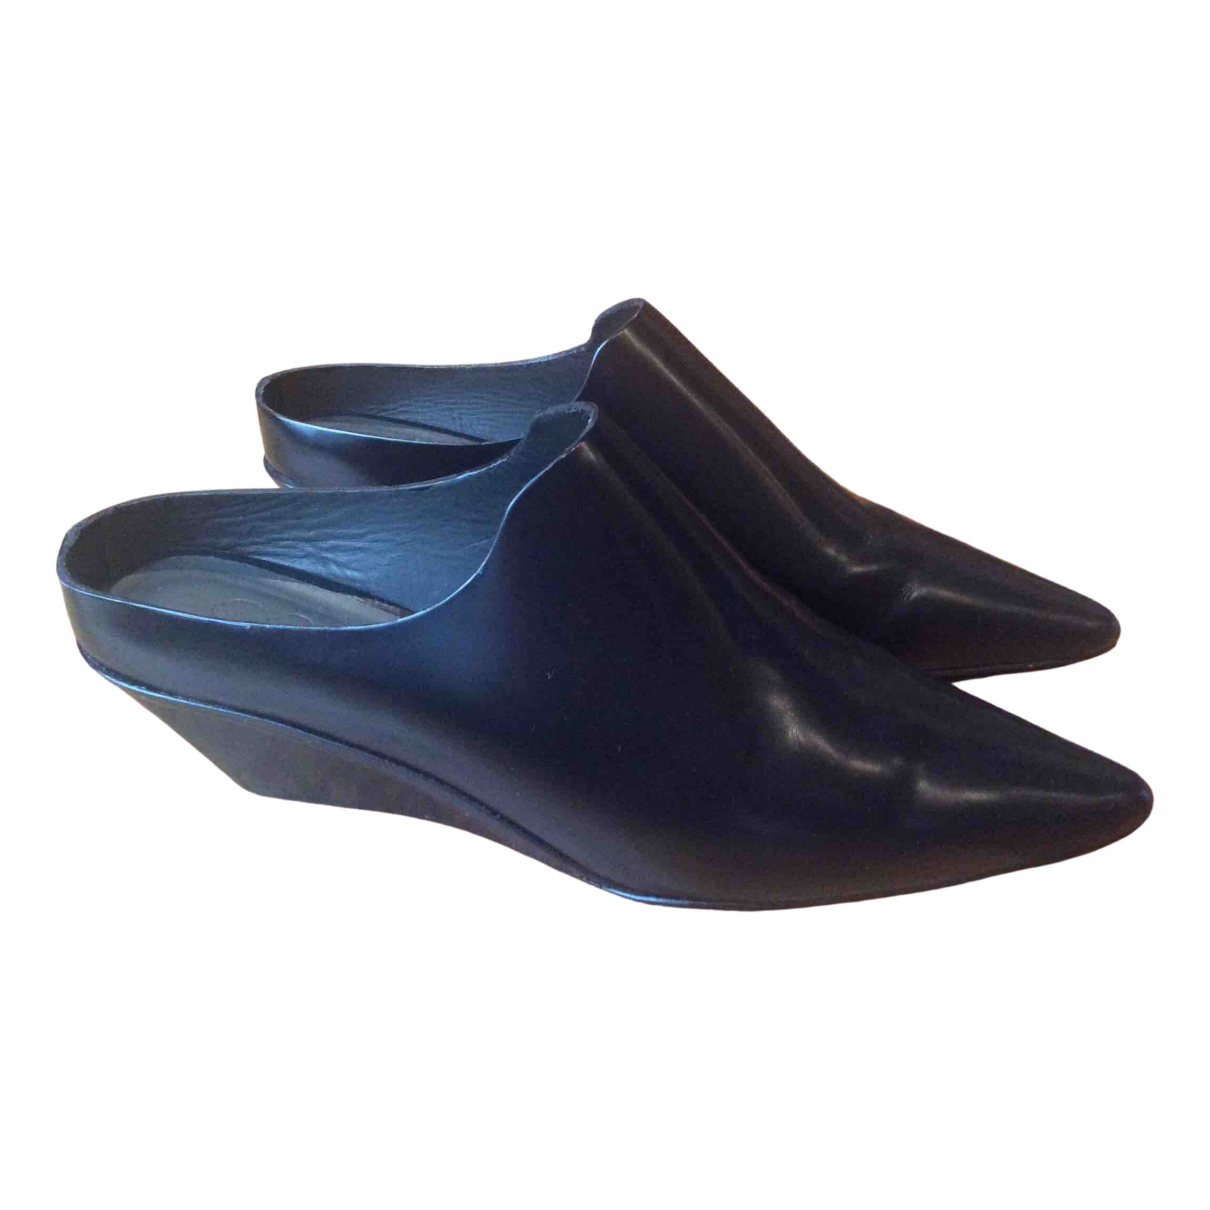 Cos N Black Leather Mules & Clogs for Women 36 EU